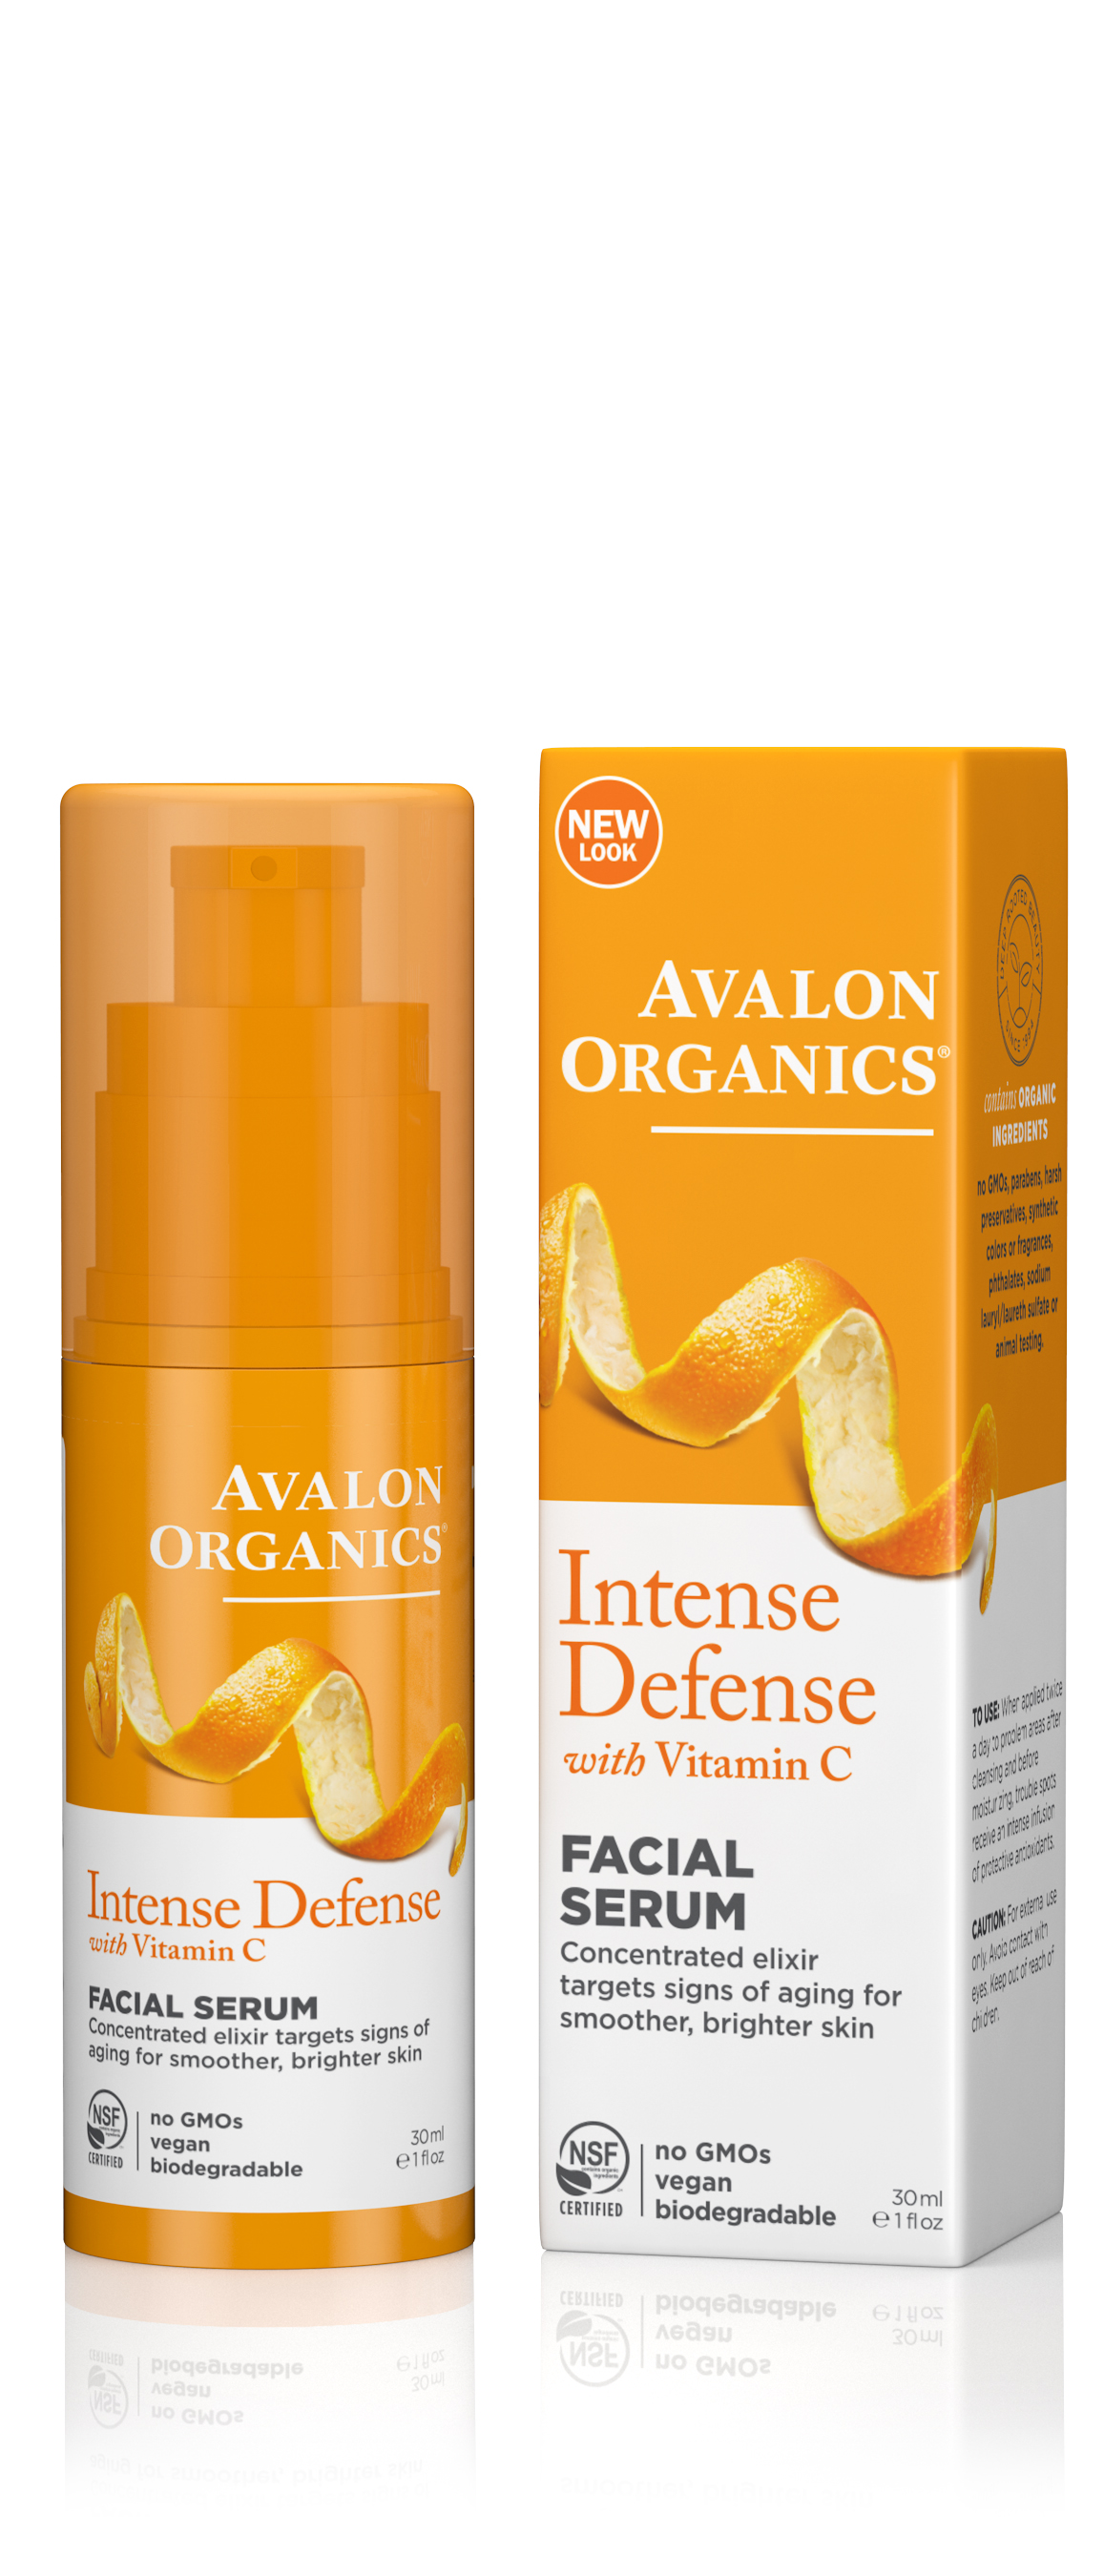 Avalon Organics Vitamin C Renewal Facial Serum